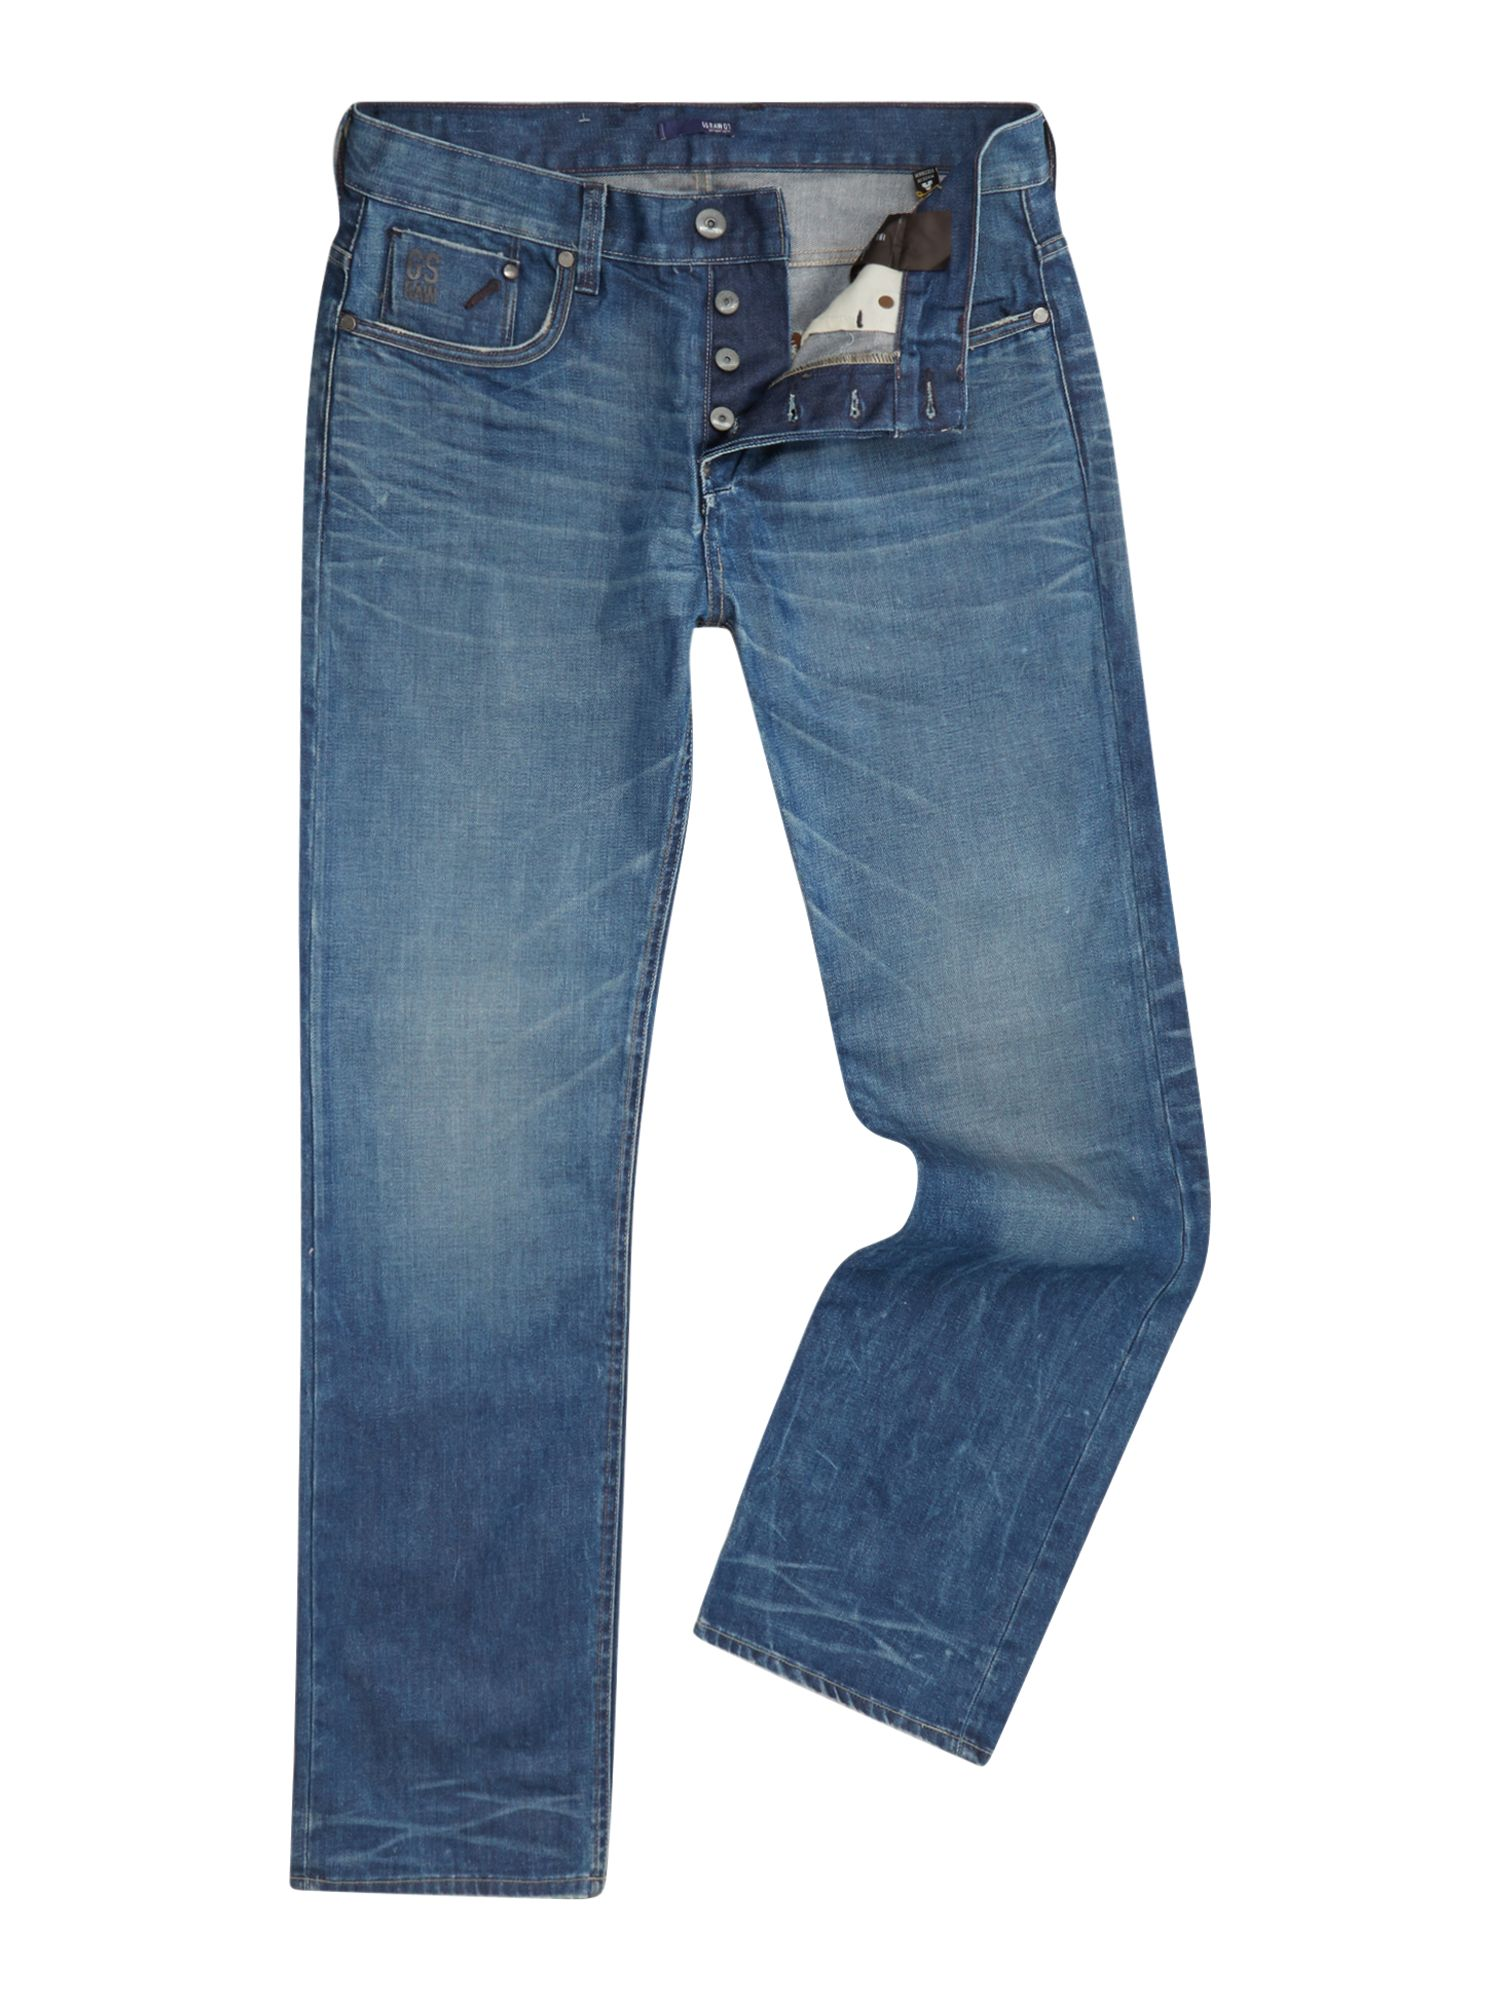 Defend slim leg hydrite dark wash jeans